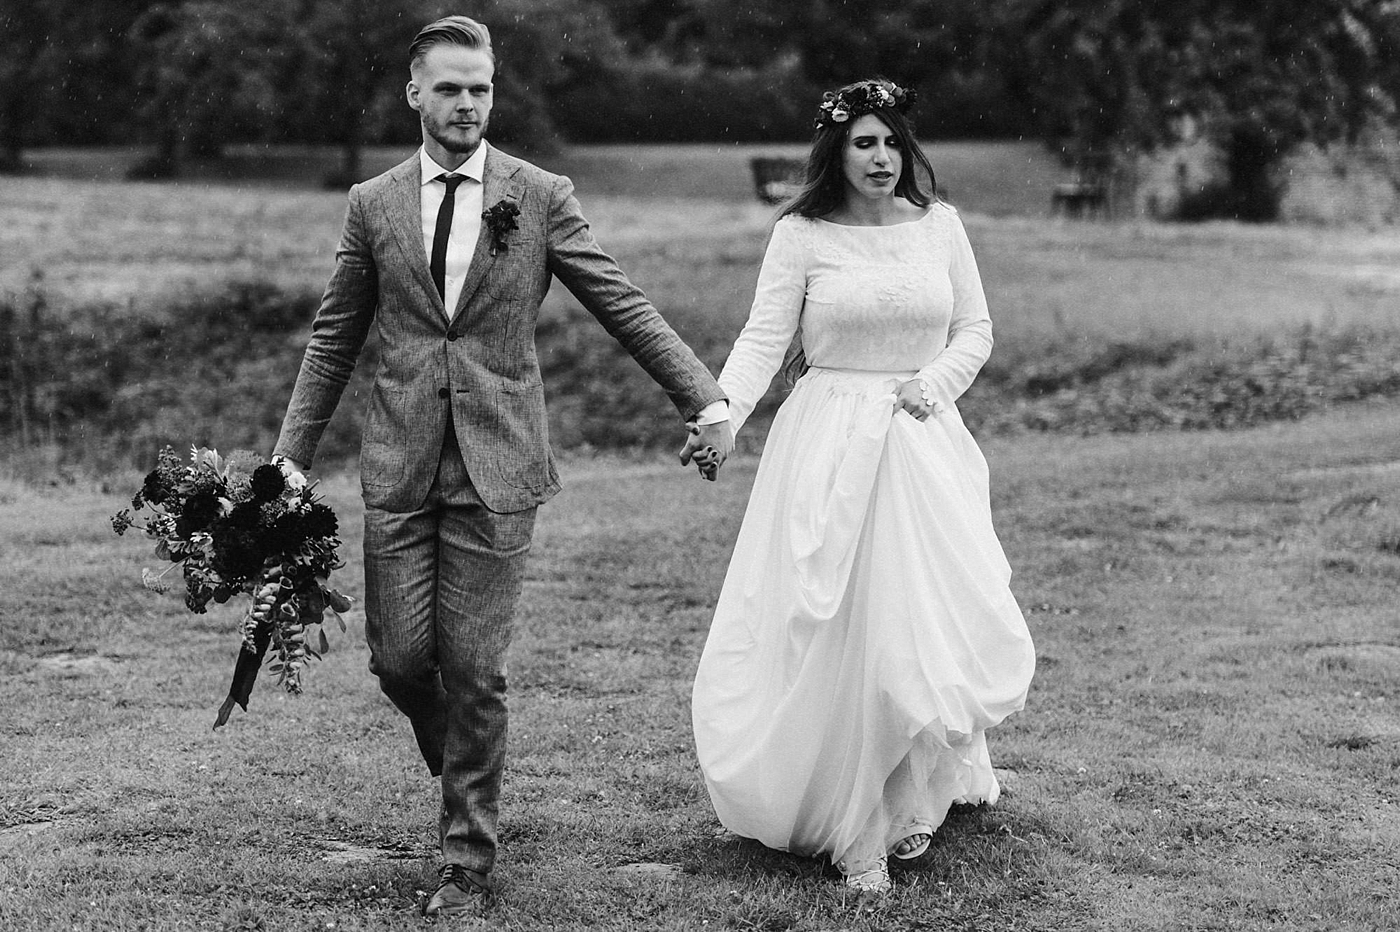 urban-elopement-wedding-132 Merve & Nils emotionales Elopement - Wedding Wesel & Schottlandurban elopement wedding 132 1